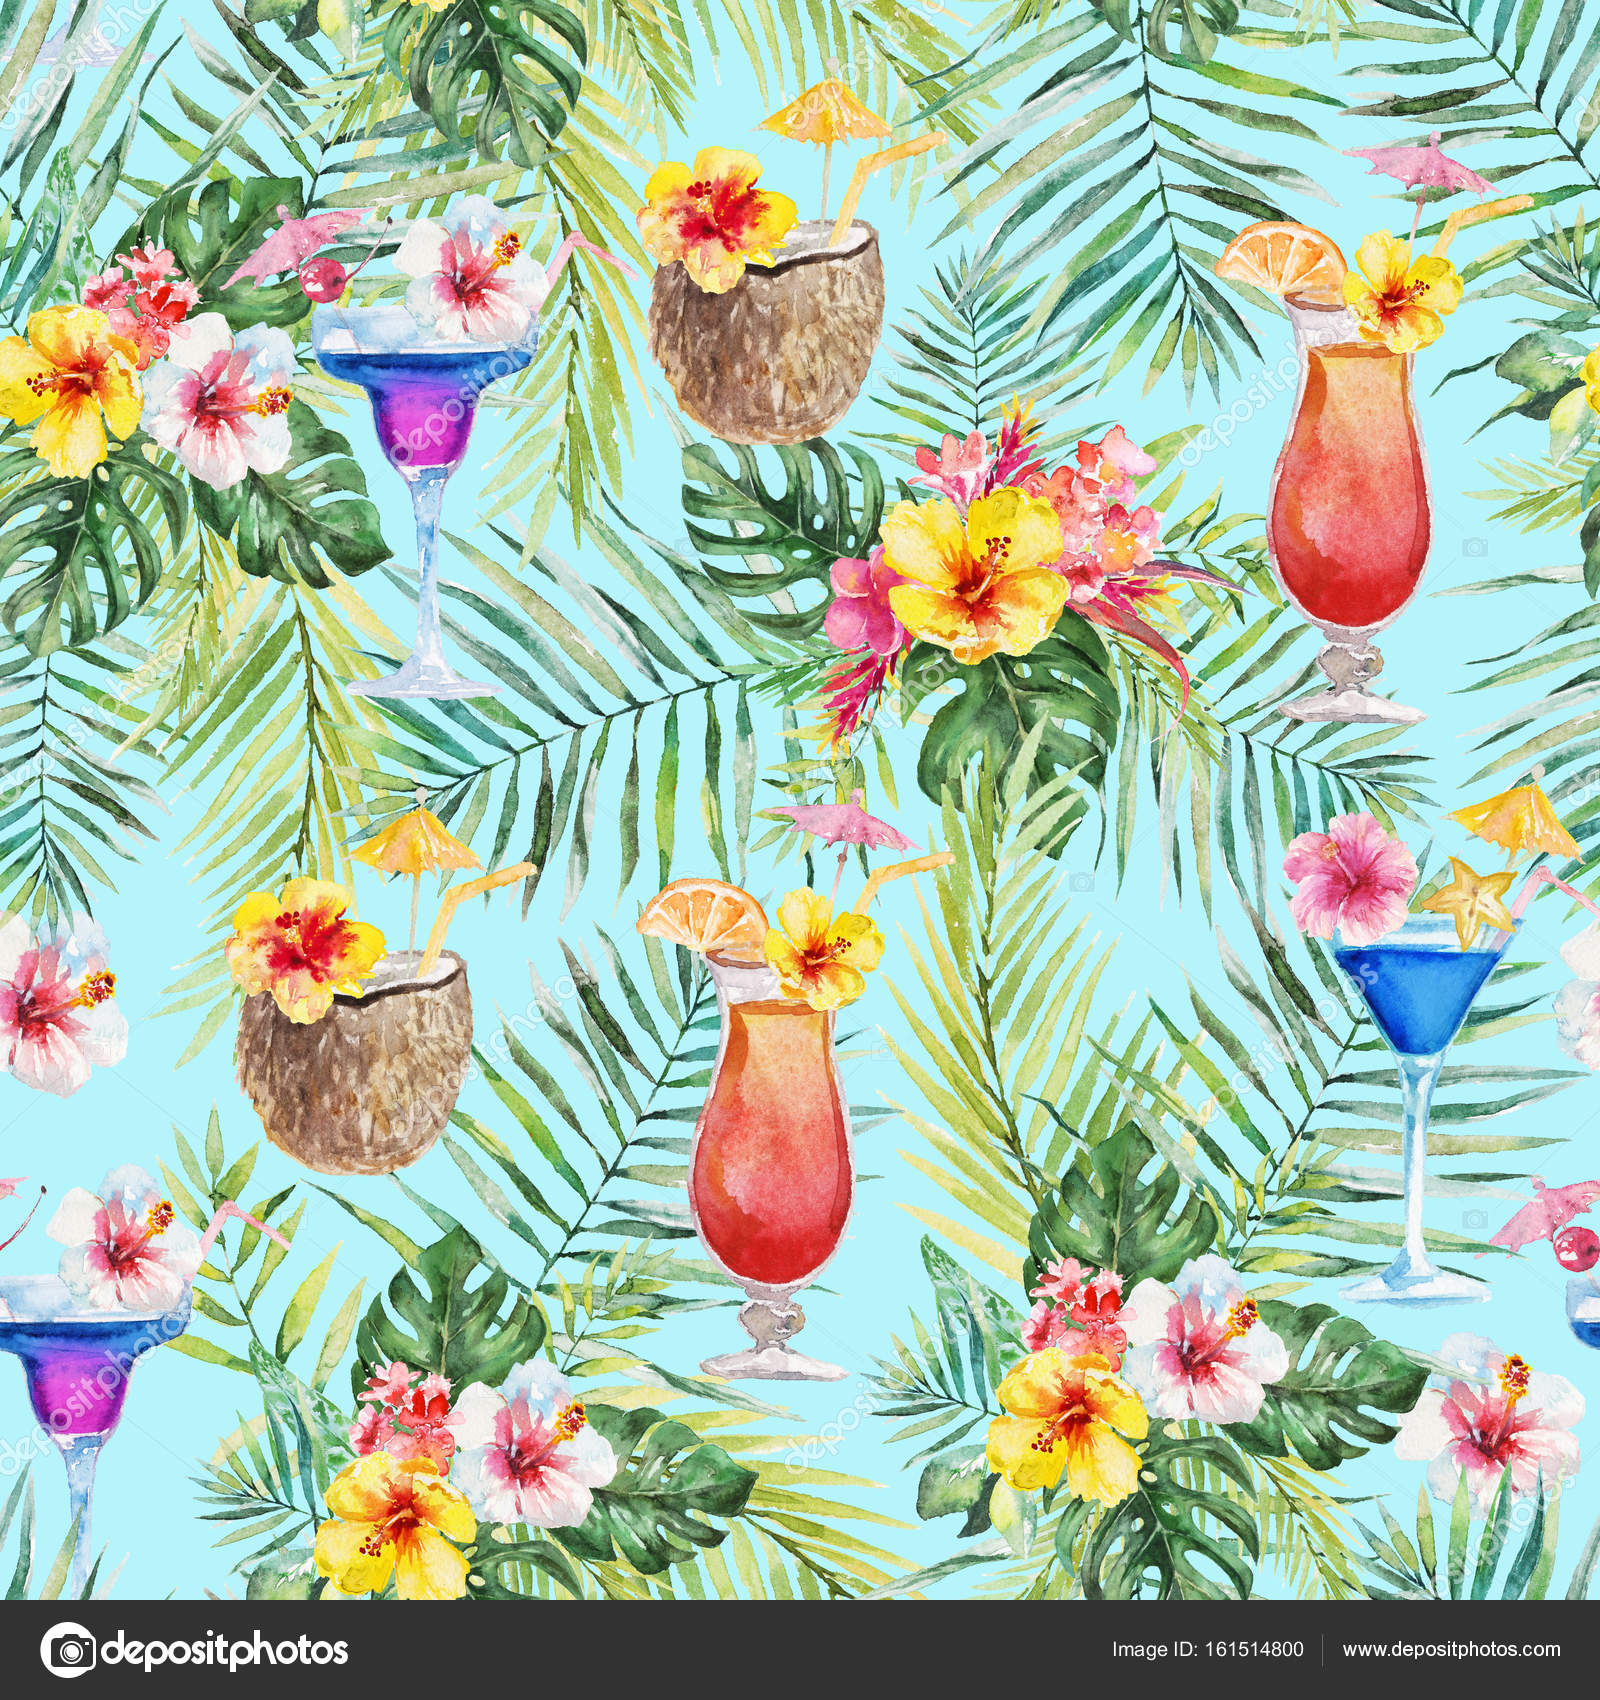 Green Palm Leaves Colorful Flowers Bright Cocktails And Coconut Beverages On The Blue Background Watercolor Hand Painted Seamless Pattern